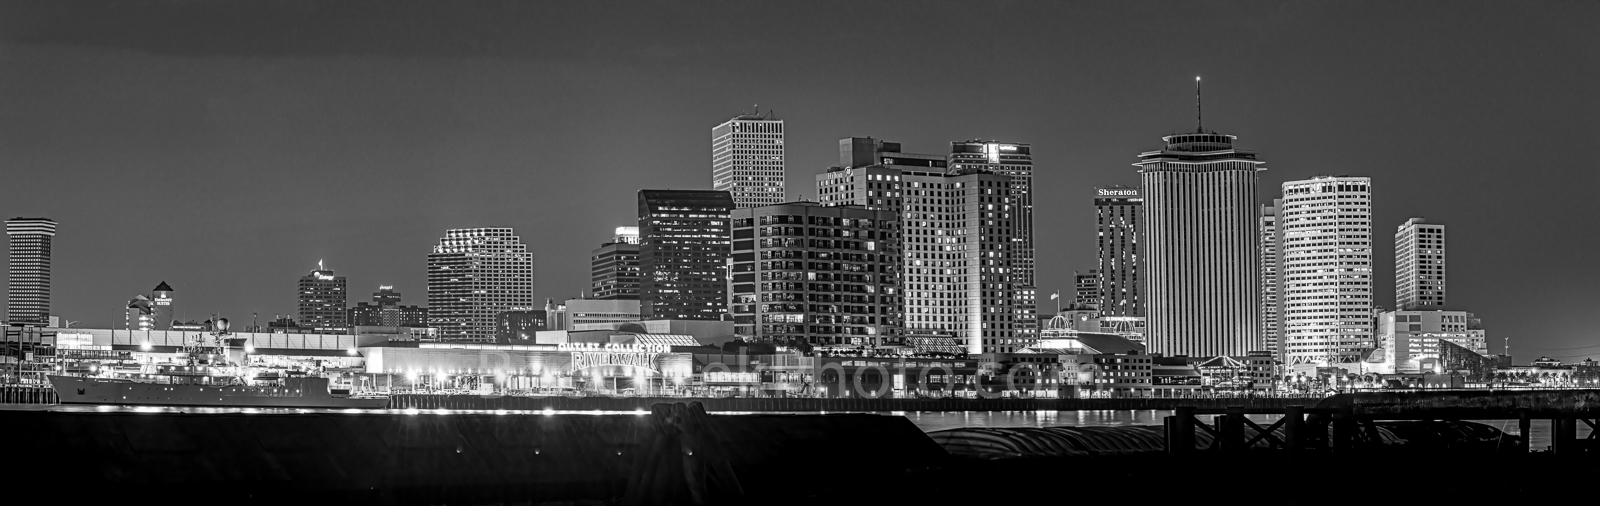 New Orleans skyline, black and white, skylines, cityscape, cityscapes, sun set, downtown, high rise, buildings, river, city, BW, panorama, pano, Mississippi river, Louisiana,, photo